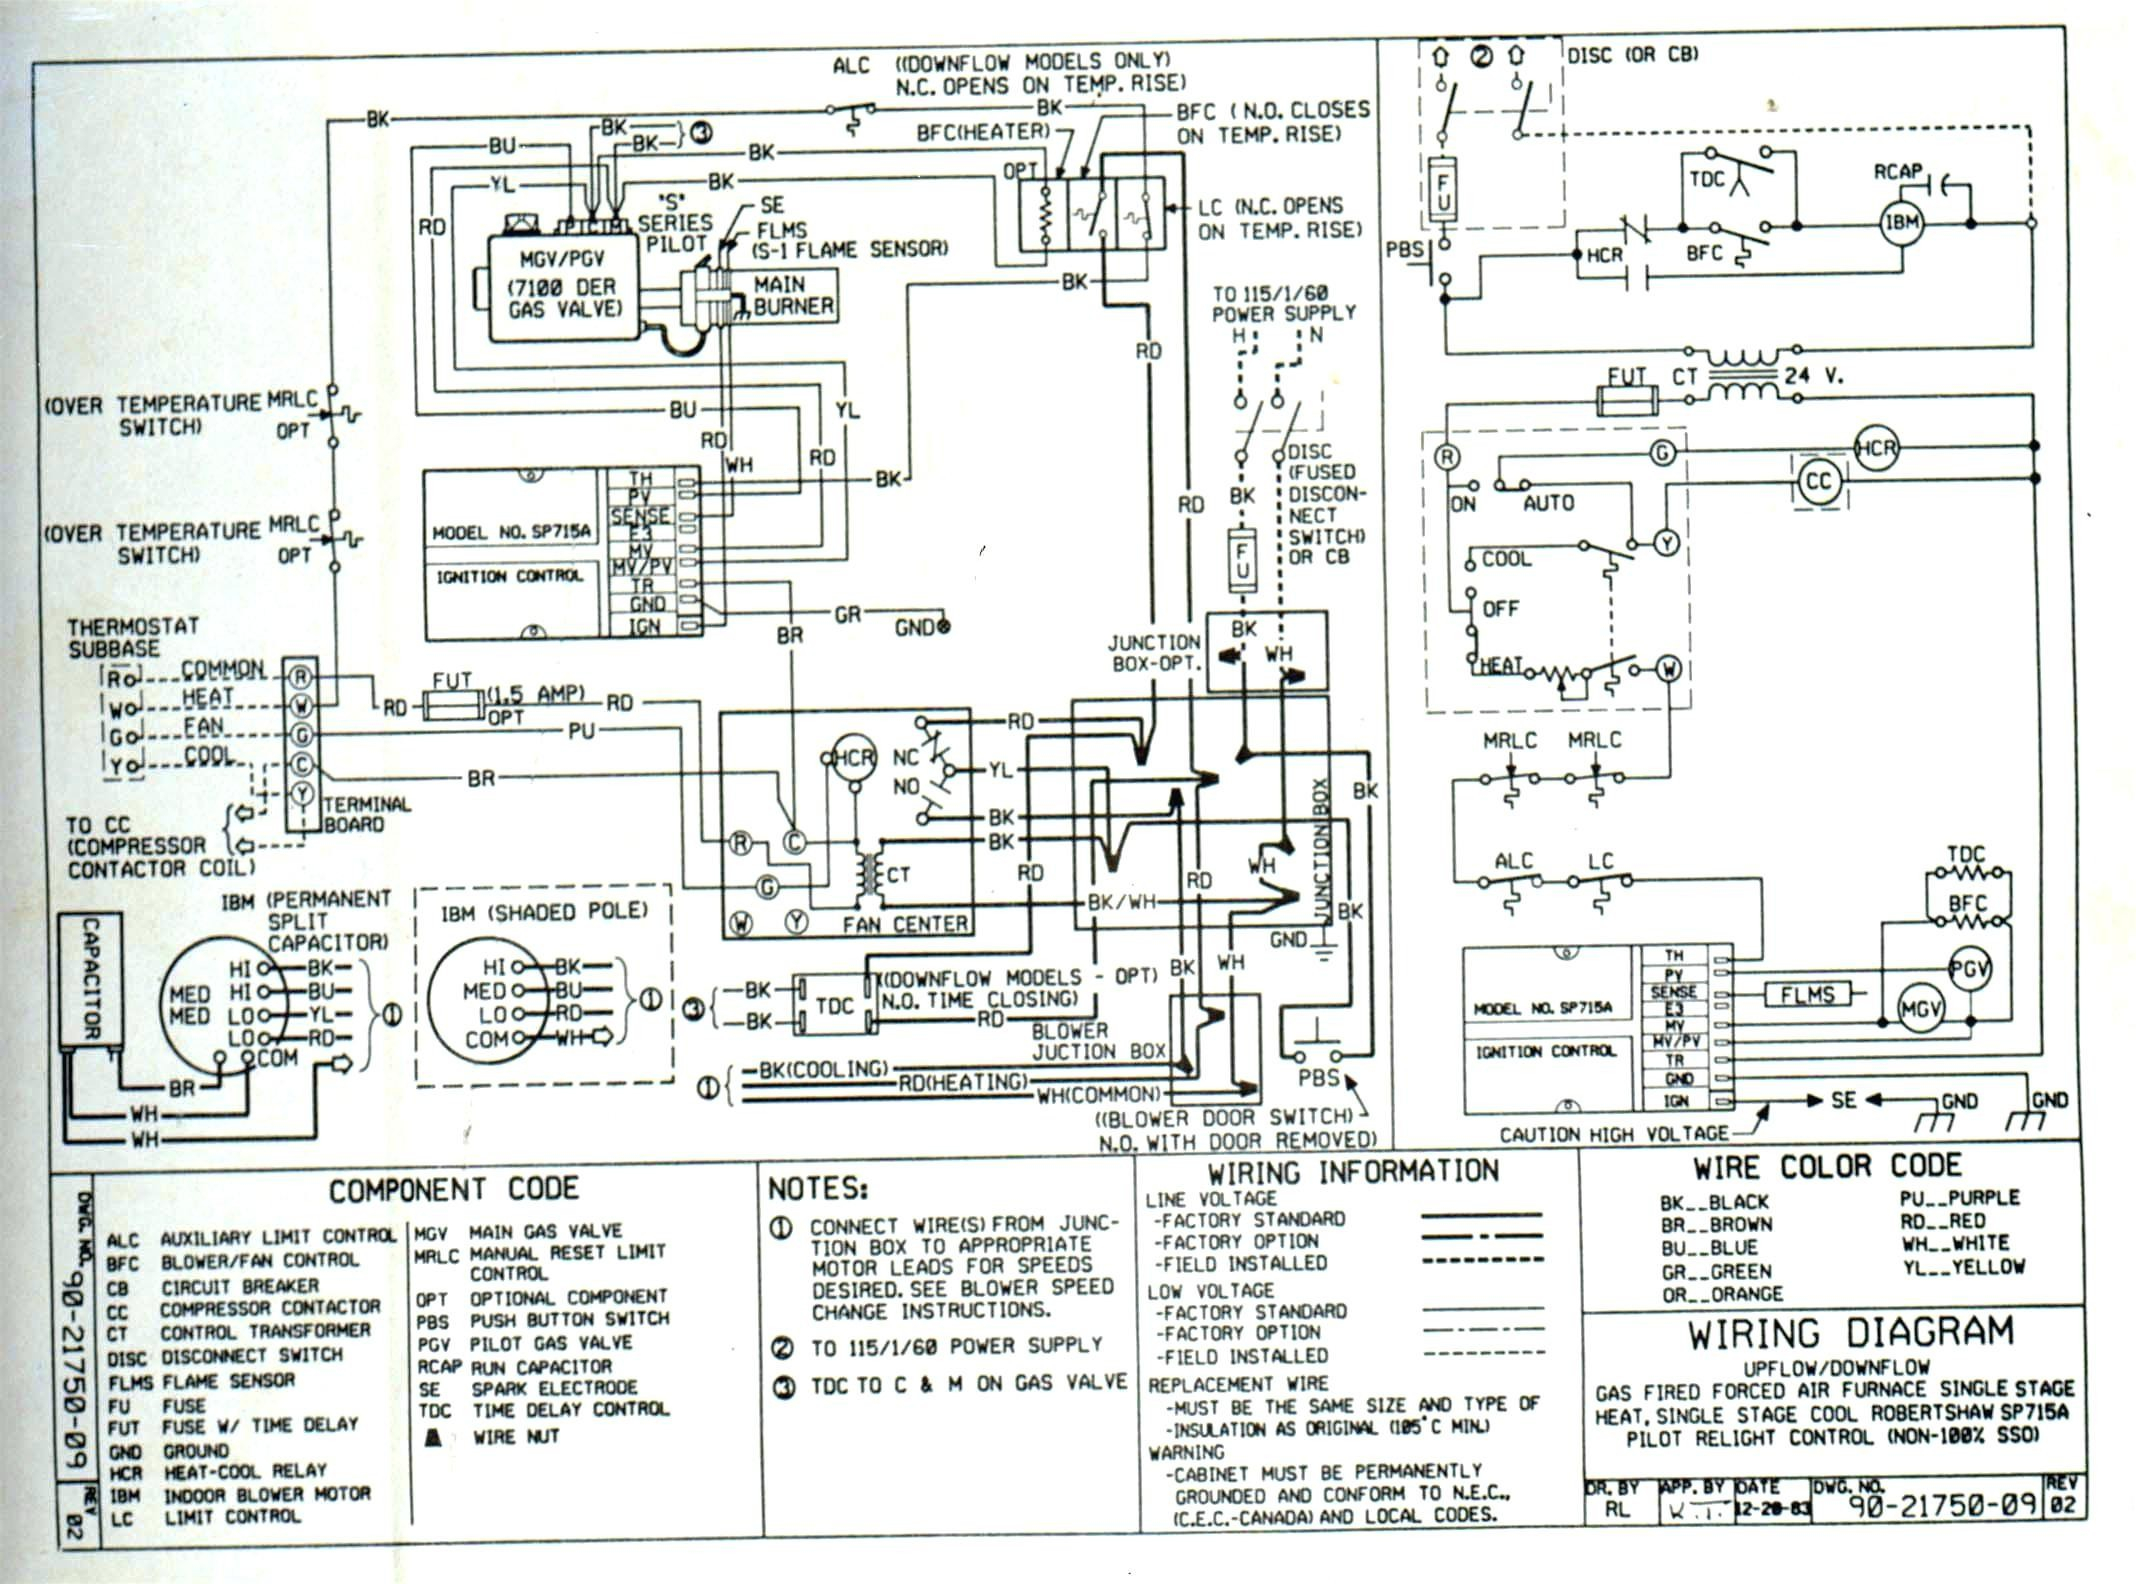 trane thermostat wiring diagram Download-Trane Thermostat Wiring Diagram Luxury Wiring Diagram For Trane Xe1000 Wiring Diagram Trane Thermostat Wiring Diagram At Trane Xe1000 Wiring Diagram 1-n